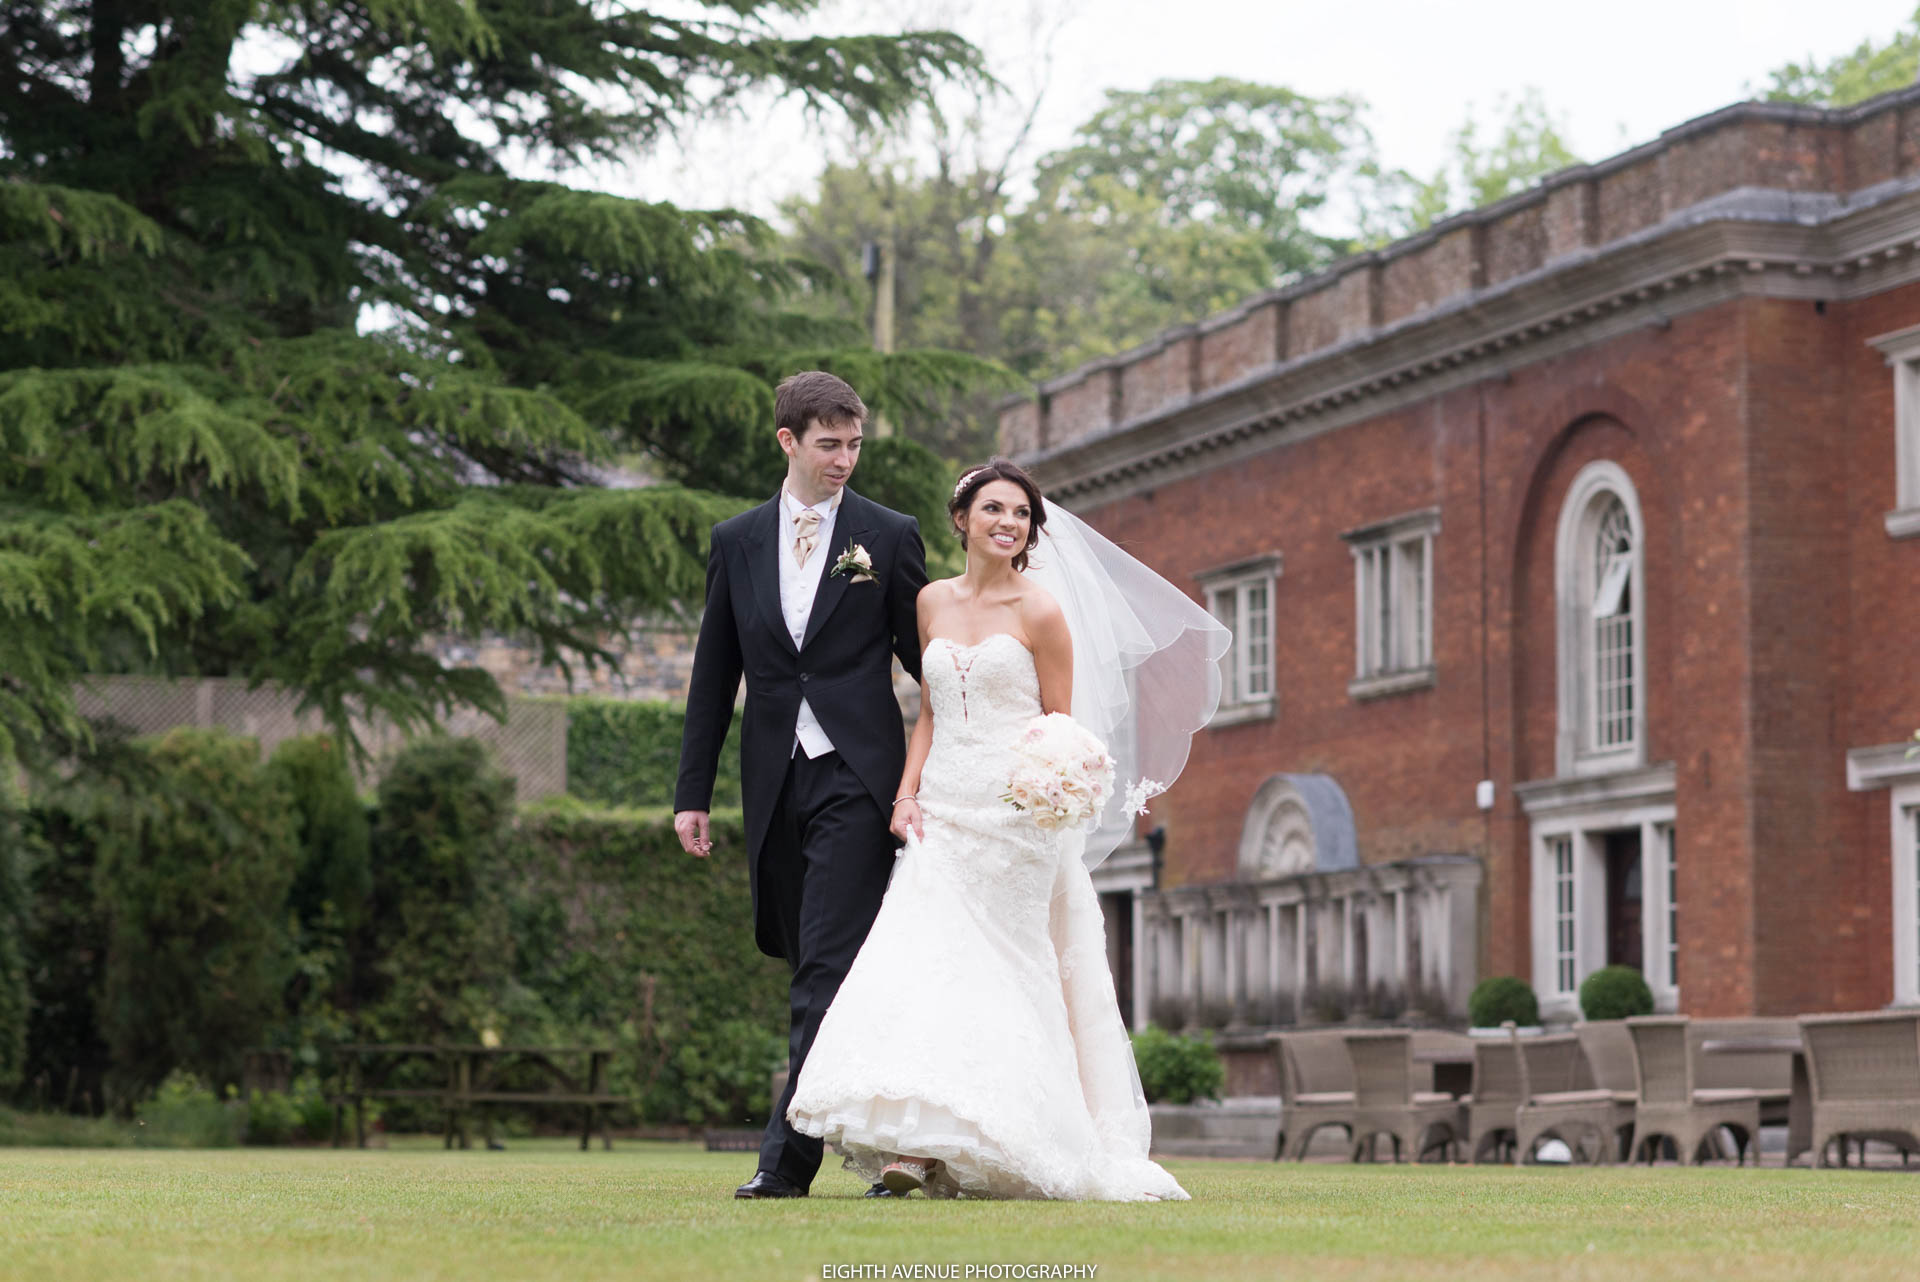 Bride and grooms walking across lawn